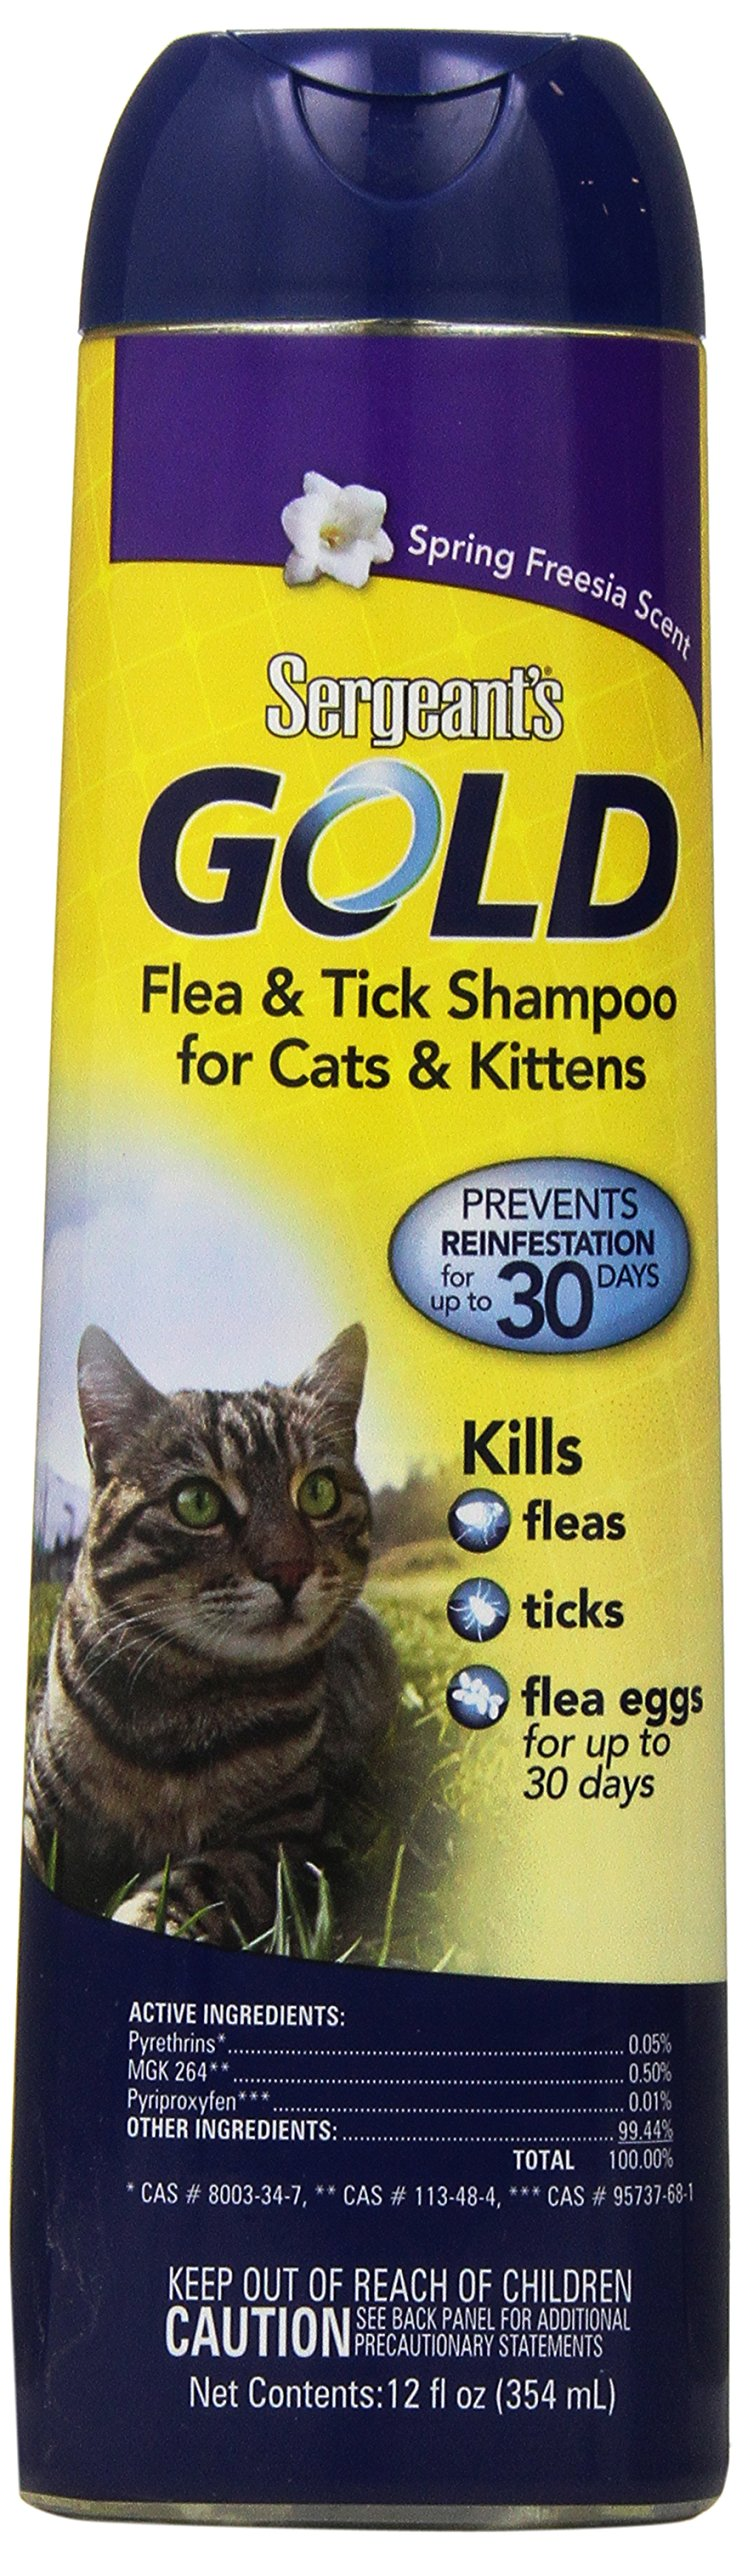 Sergeant's Gold Flea and Tick Shampoo for Cats, 12 oz